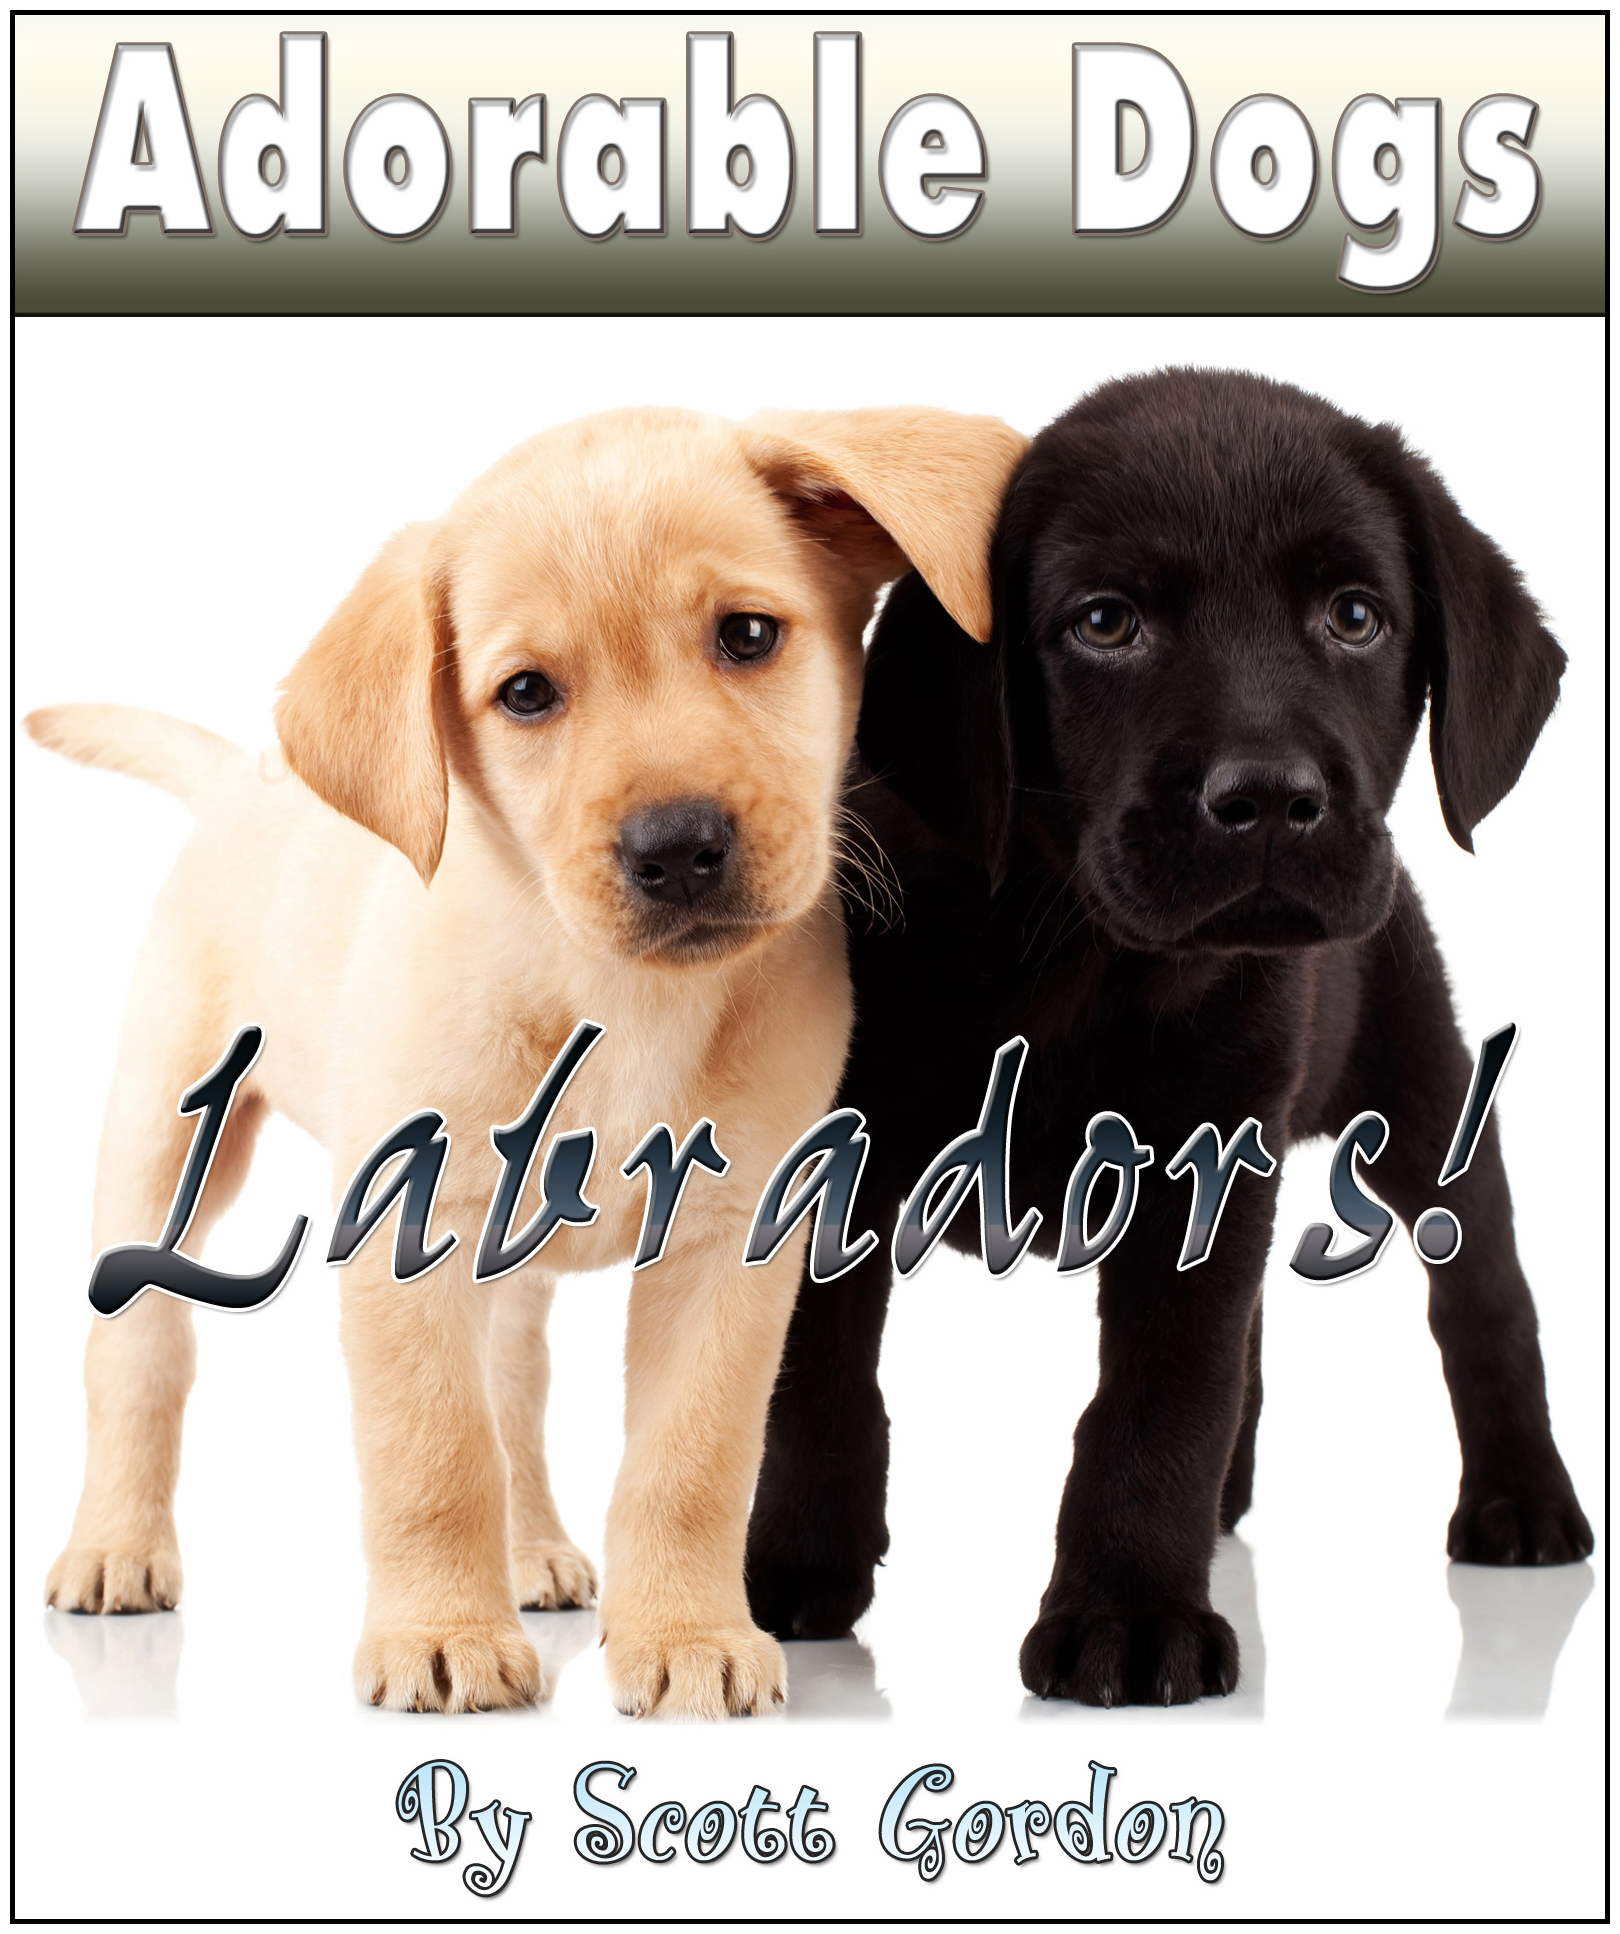 Adorable Dogs: Labradors!